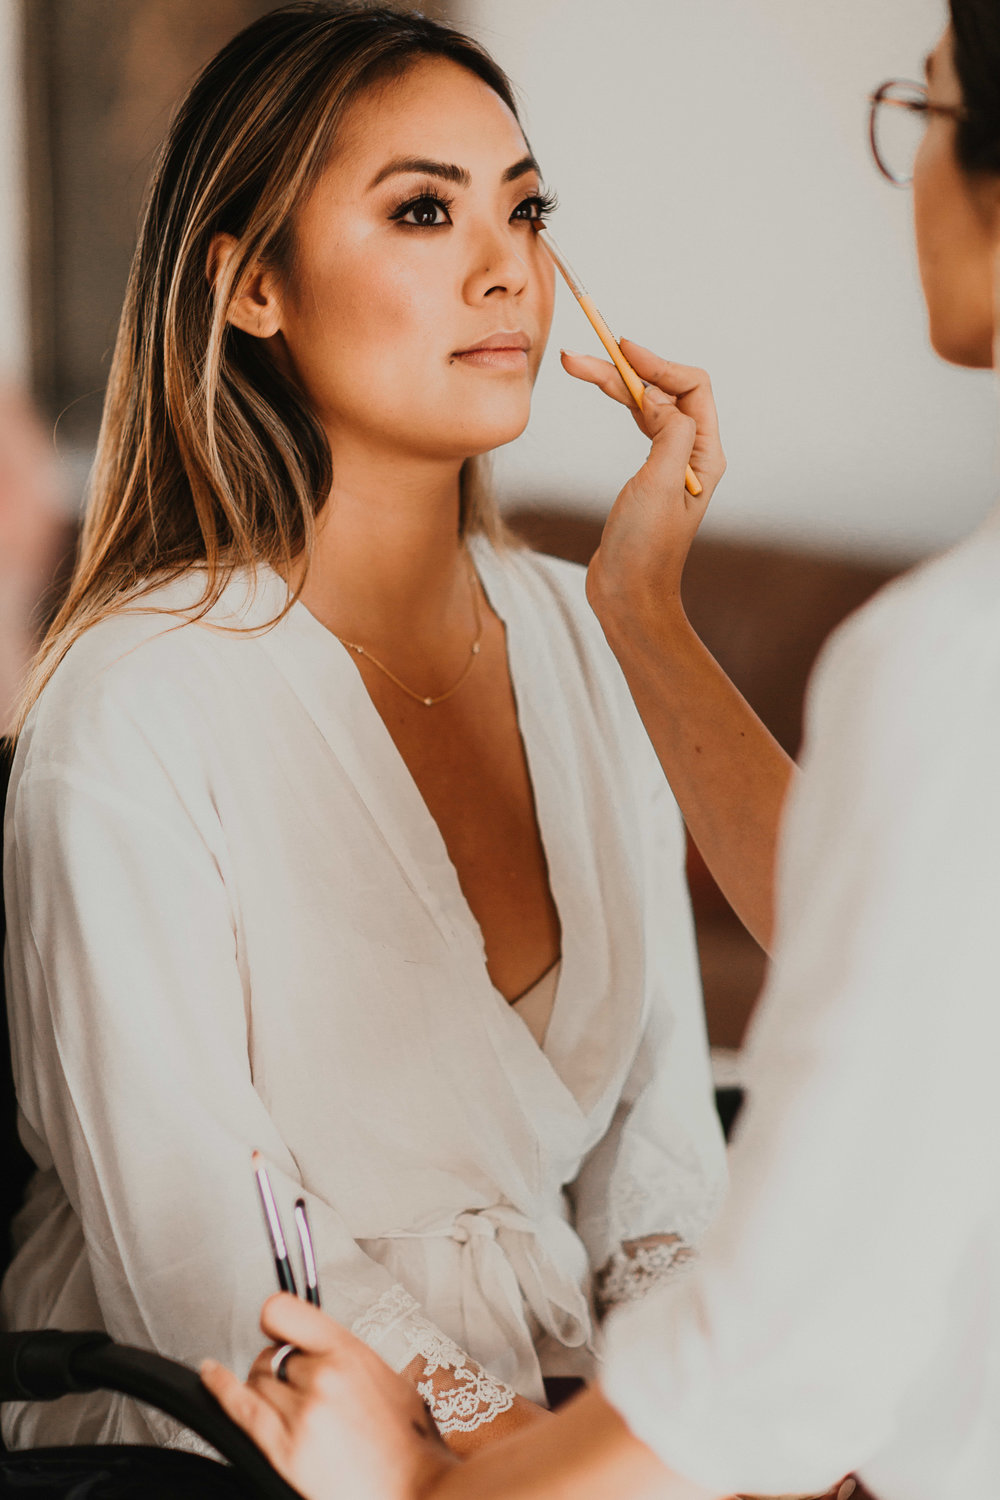 Asian bridal look, smokey eye makeup, neutral eye makeup, wedding day makeup inspiration. Wedding Hair and makeup by Vanity Belle in Orange County (Costa Mesa) and San Diego (La Jolla)